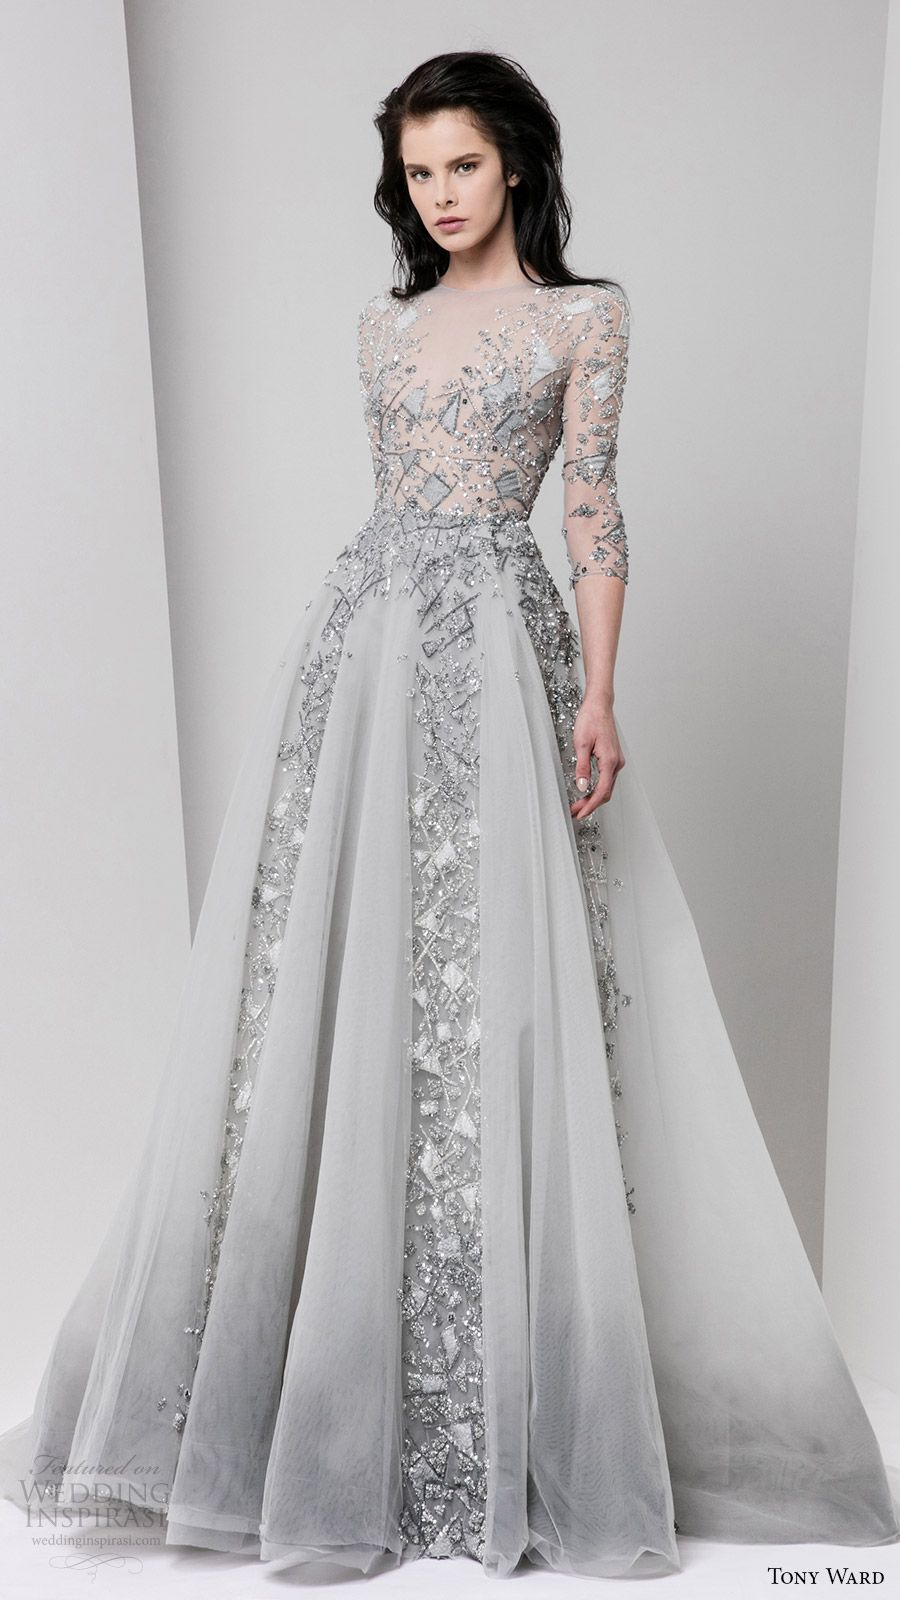 680f050f2c3  Stunning Tony ward fall 2016 rtw 3 quarter sleeves illusion bateau neck a  line evening dress grey gray embellished. Formal Gown Philippines ...